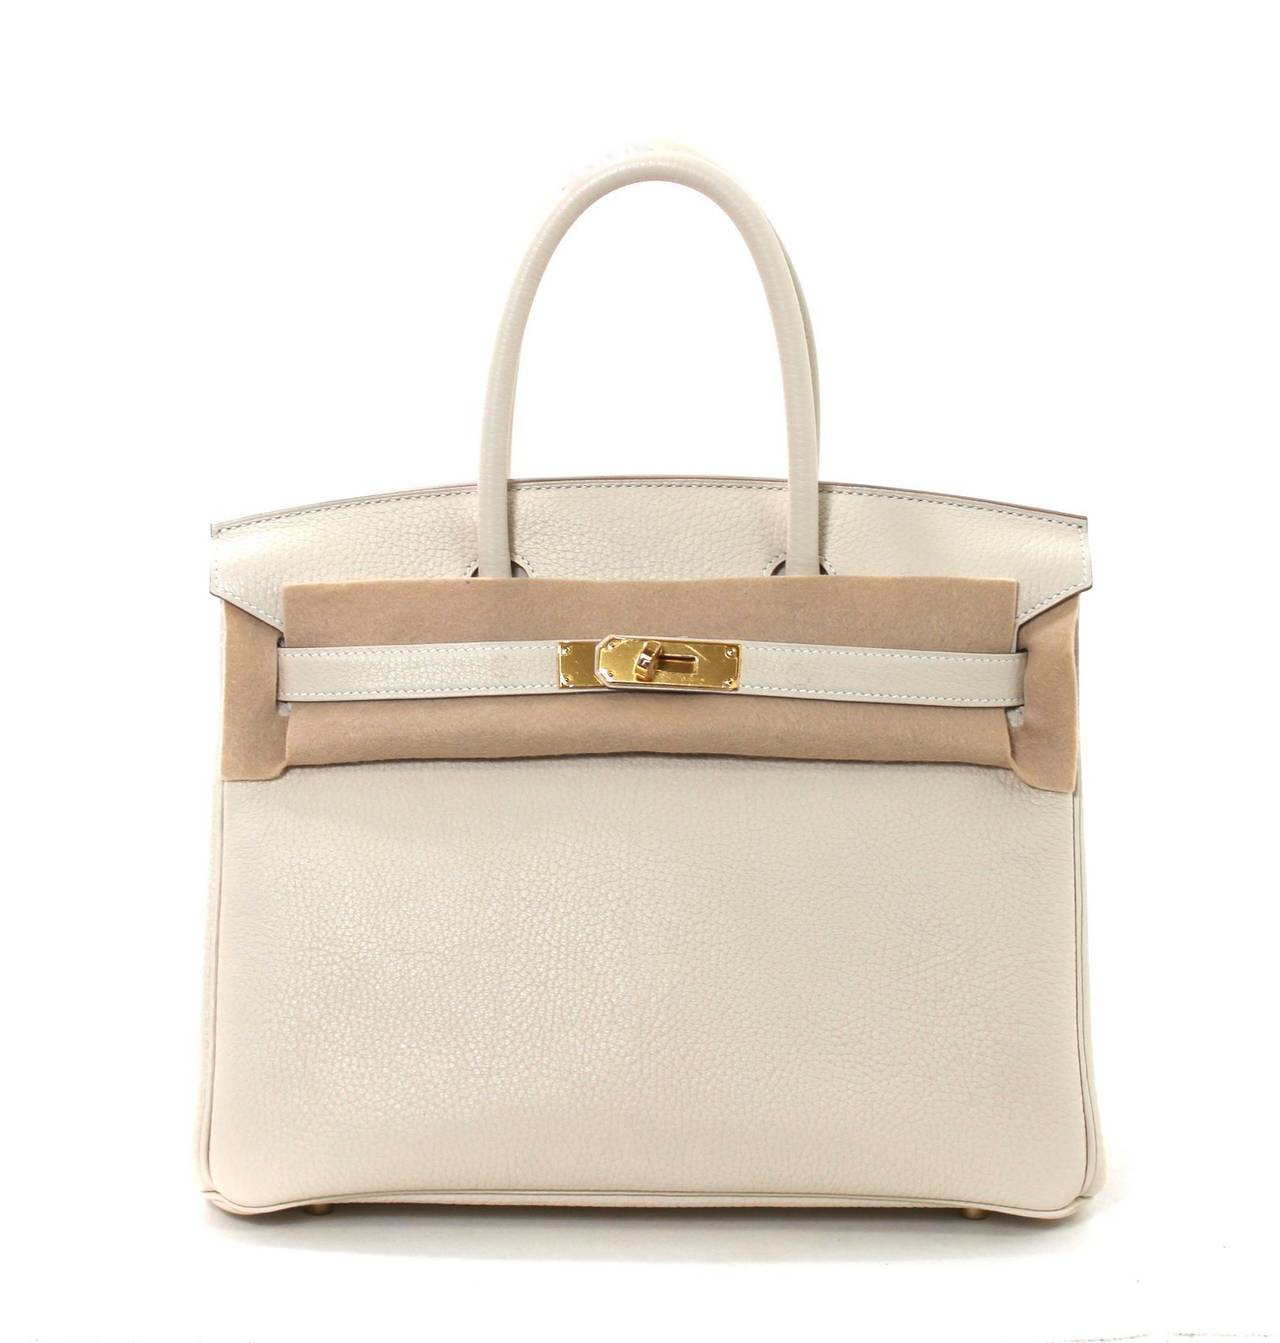 Hermes Birkin Bag in Craie Clemence with Gold- Bone color 30 cm 9